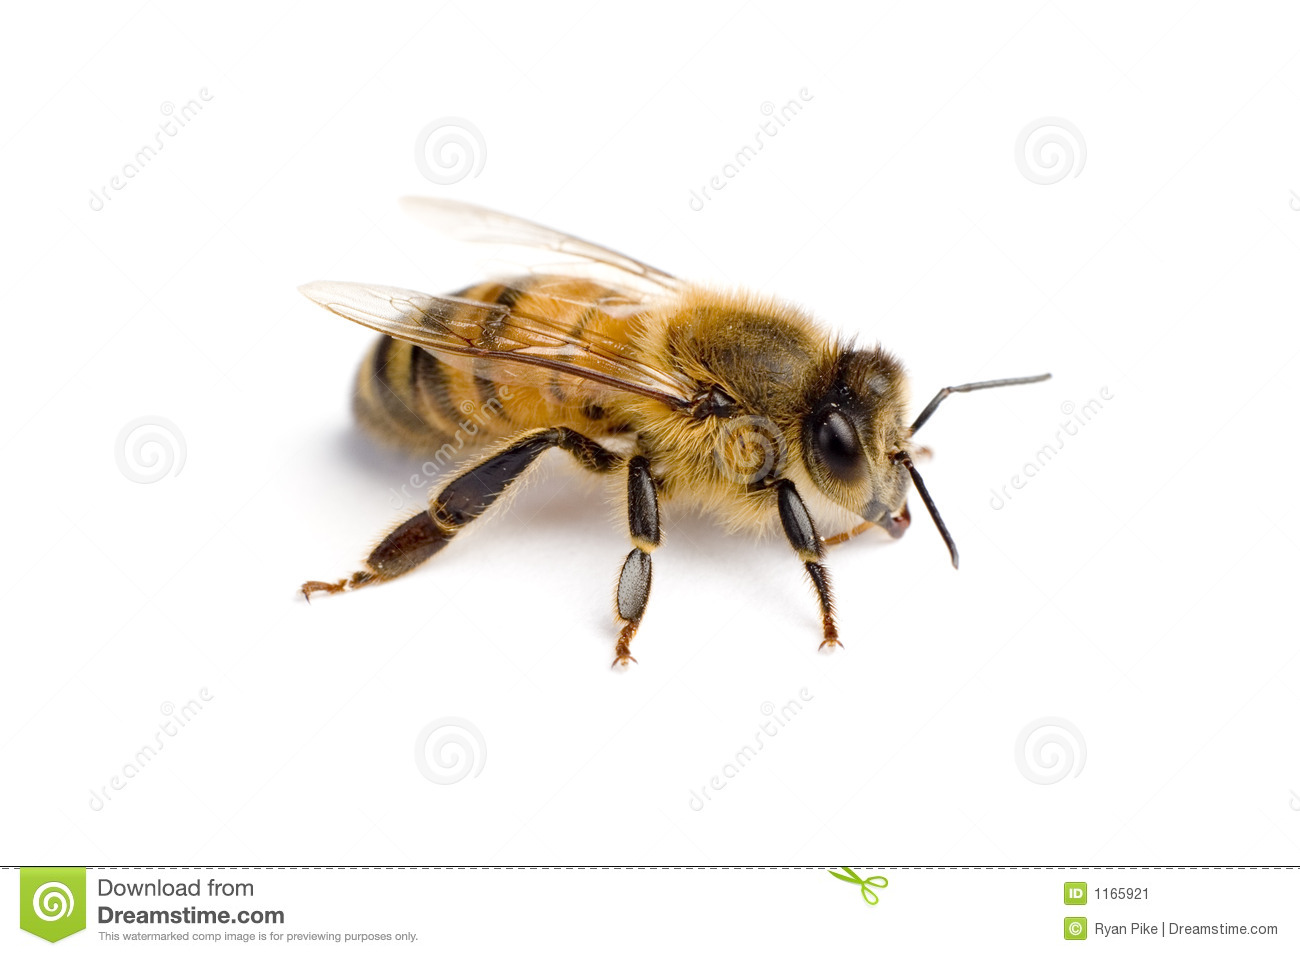 insect drones with Stock Image Worker Bee Image1165921 on Stock Image Worker Bee Image1165921 also Honey Bee Queen together with Honey Bee Life Cycle furthermore Watch together with The Wasp Life Cycle When Do Wasps Die Off.